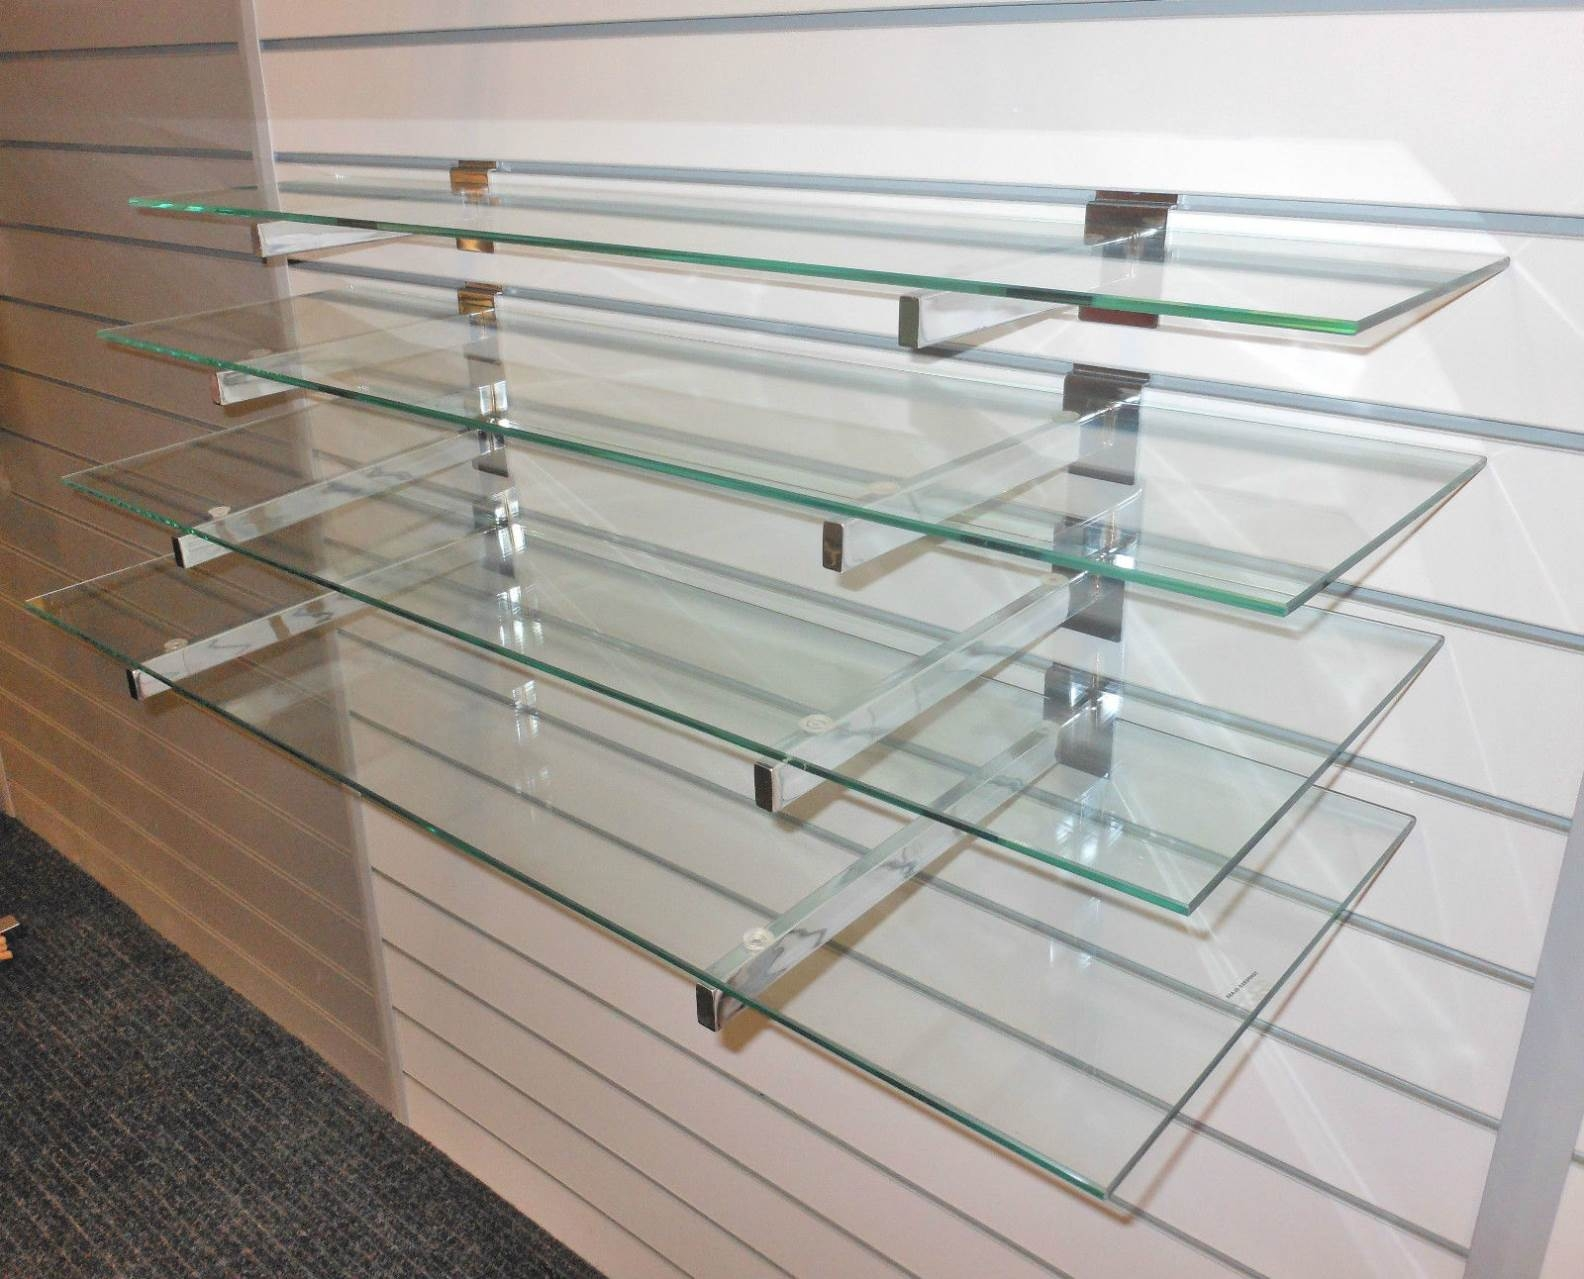 Wall Mounted Glass Shelves In India Naindien Pertaining To Wall Mounted Glass Shelves (Image 12 of 15)